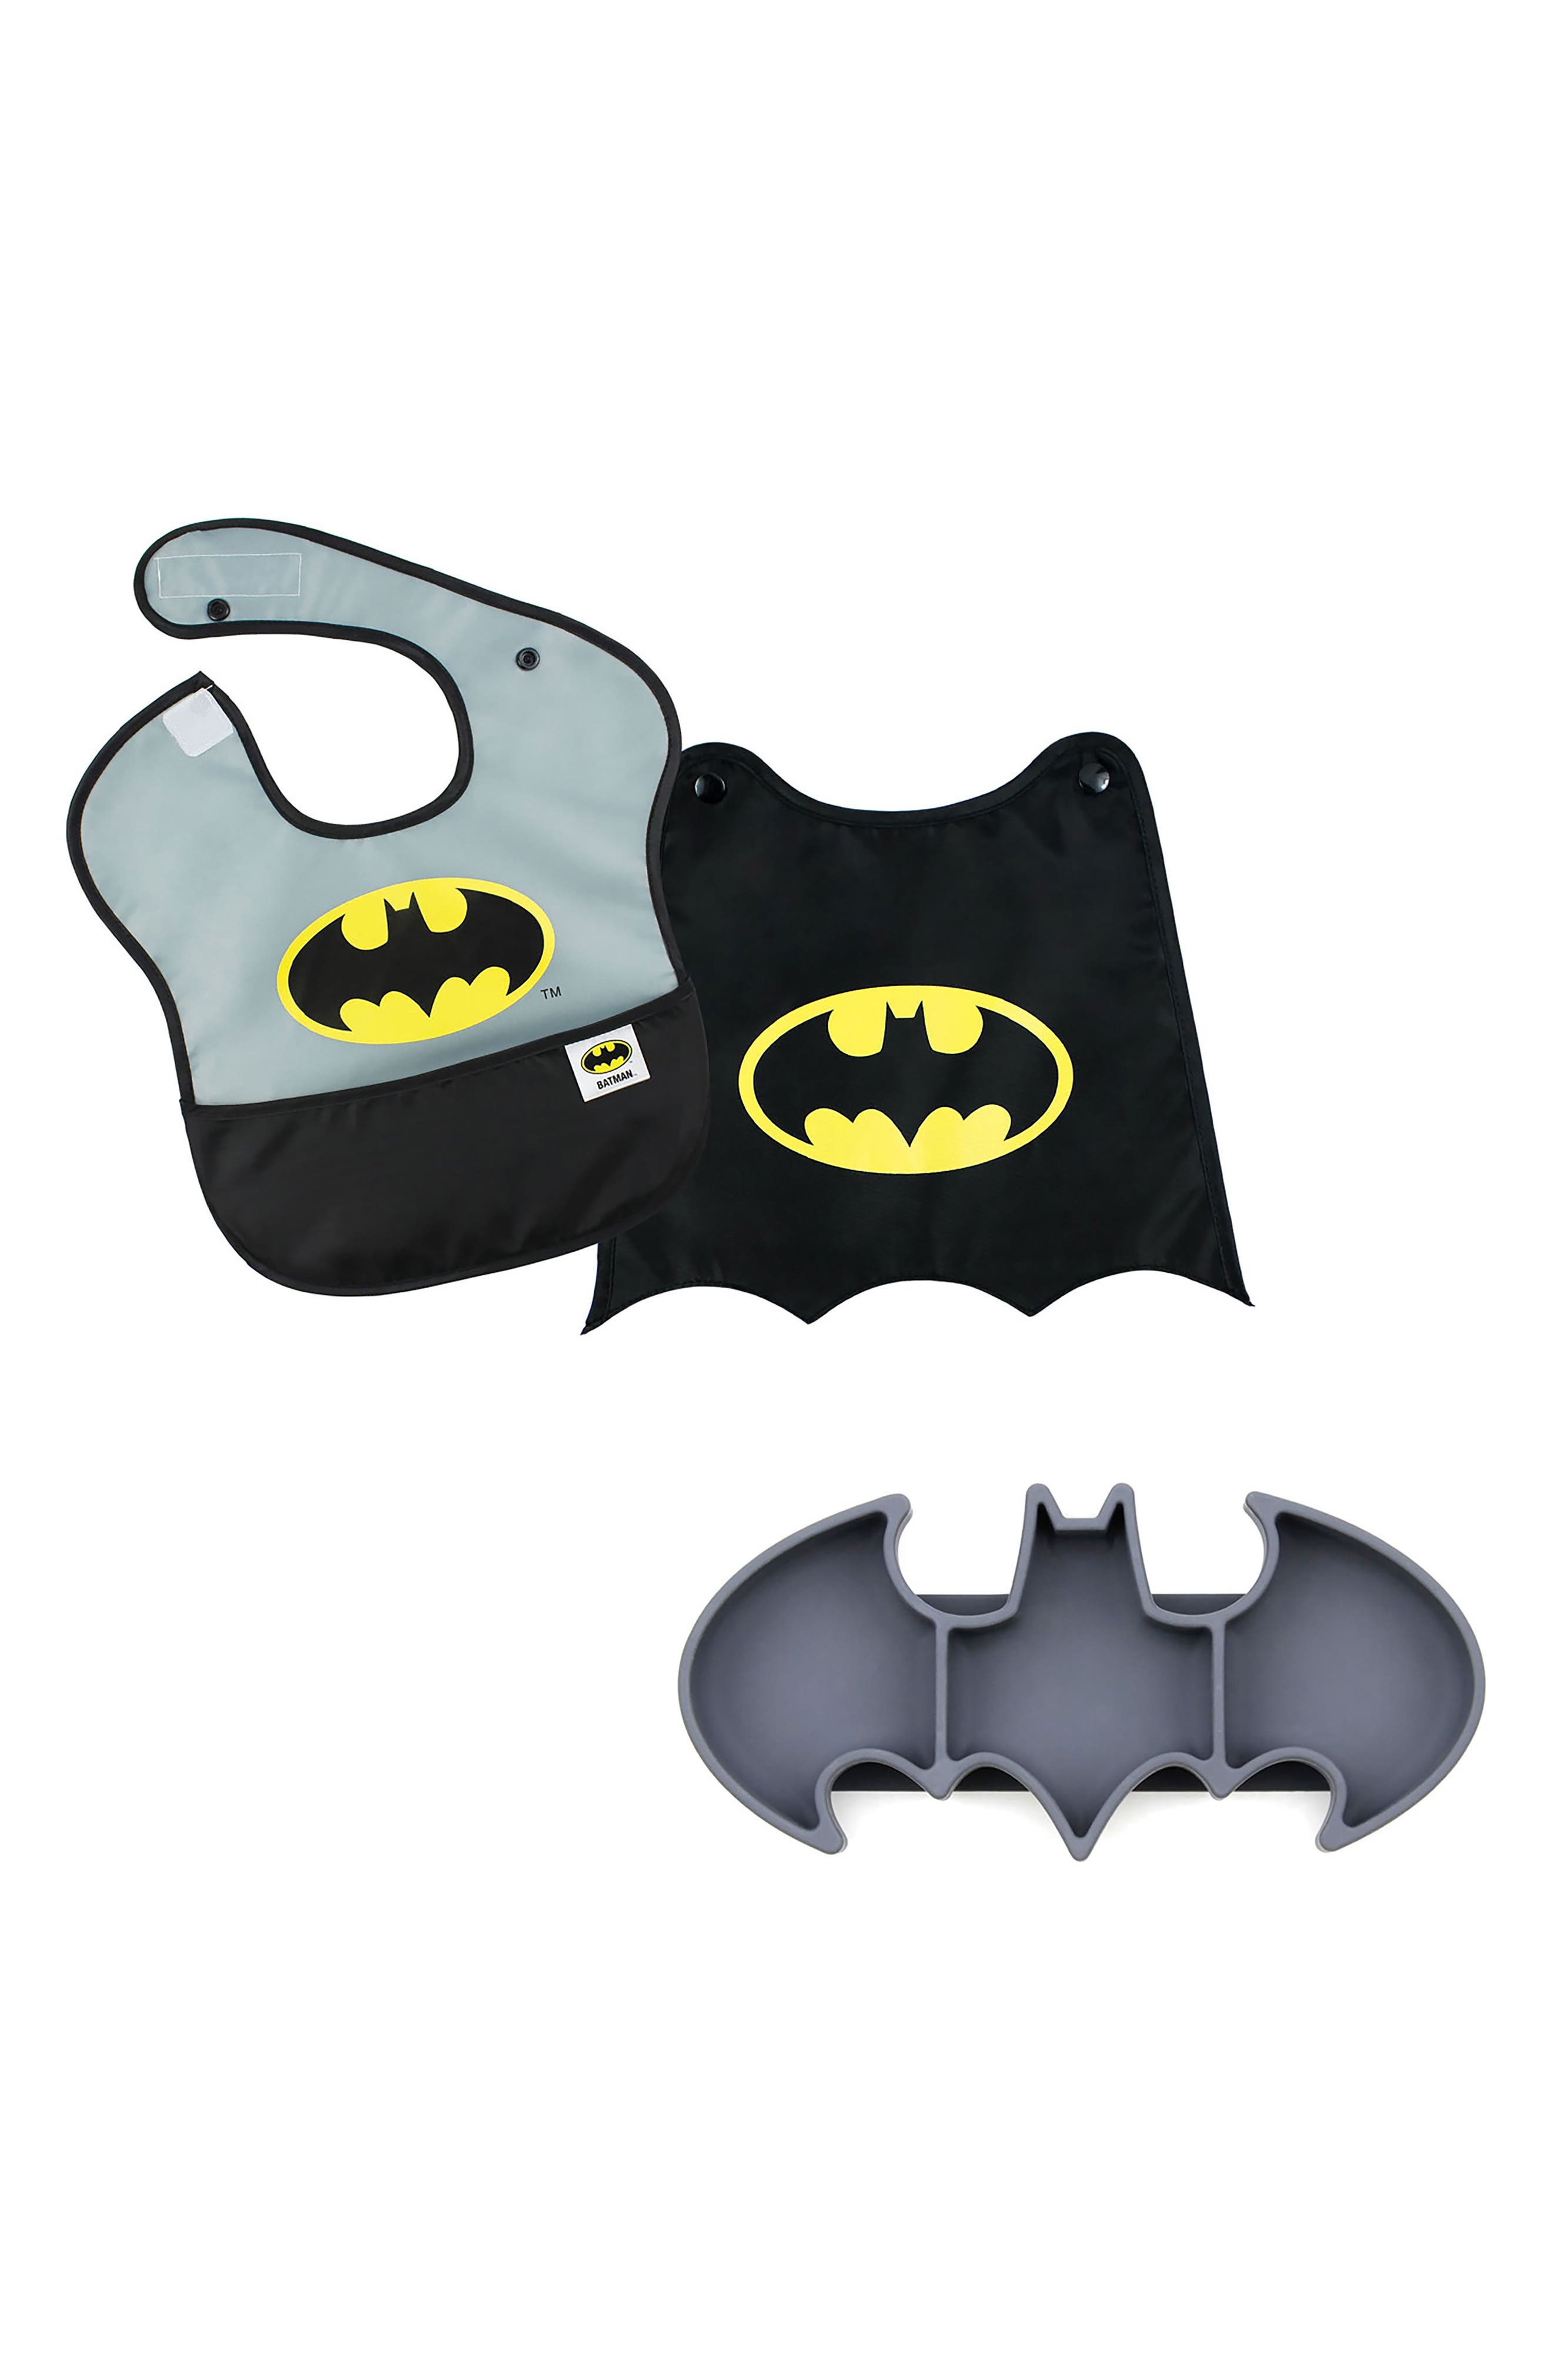 Batman Grip Dish & Caped SuperBib Set,                             Main thumbnail 1, color,                             001